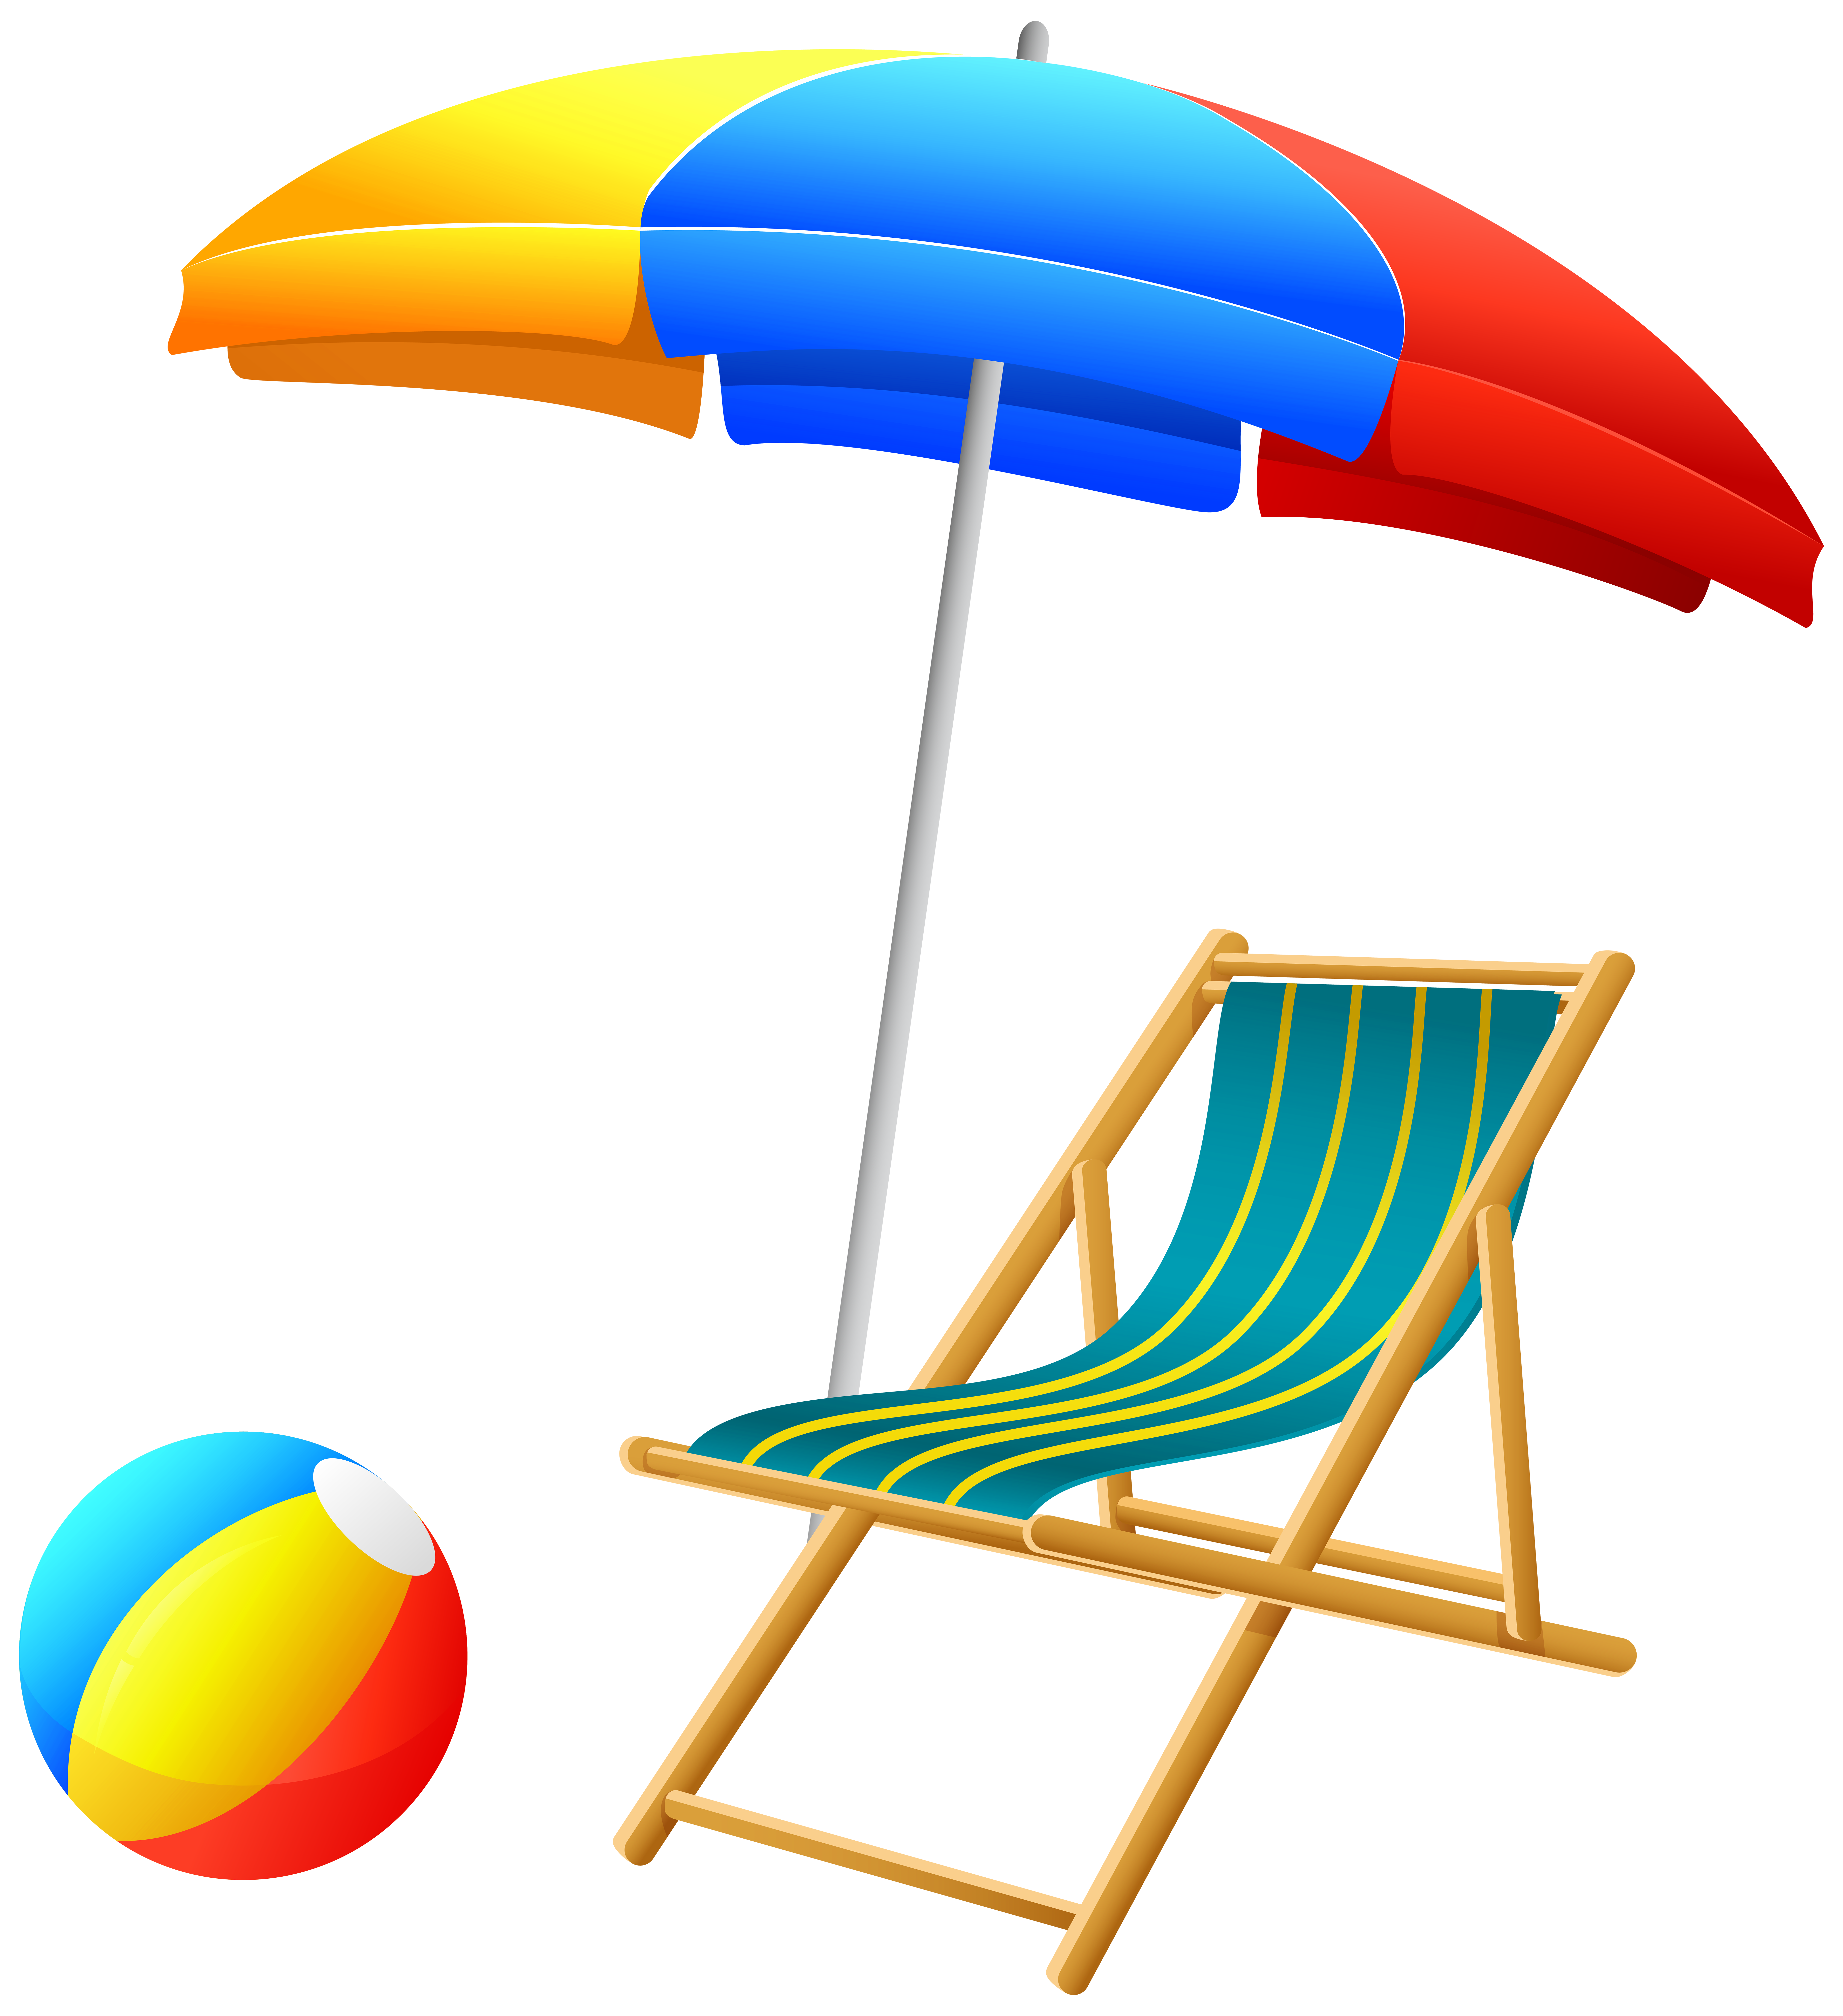 clipart chair at getdrawings com free for personal use clipart